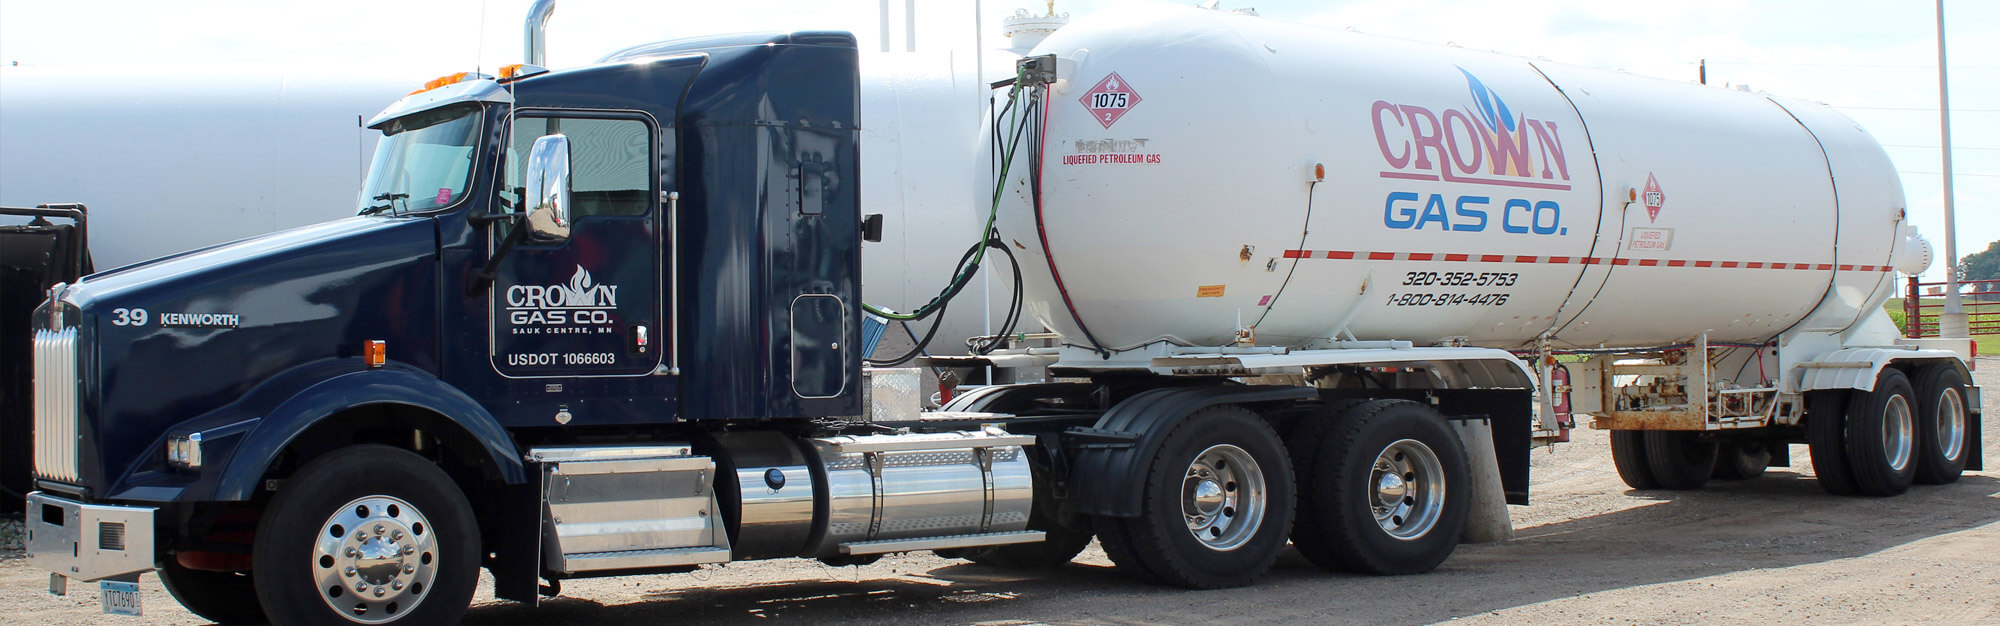 Semi-tractor pulling a large propane tank for commercial services